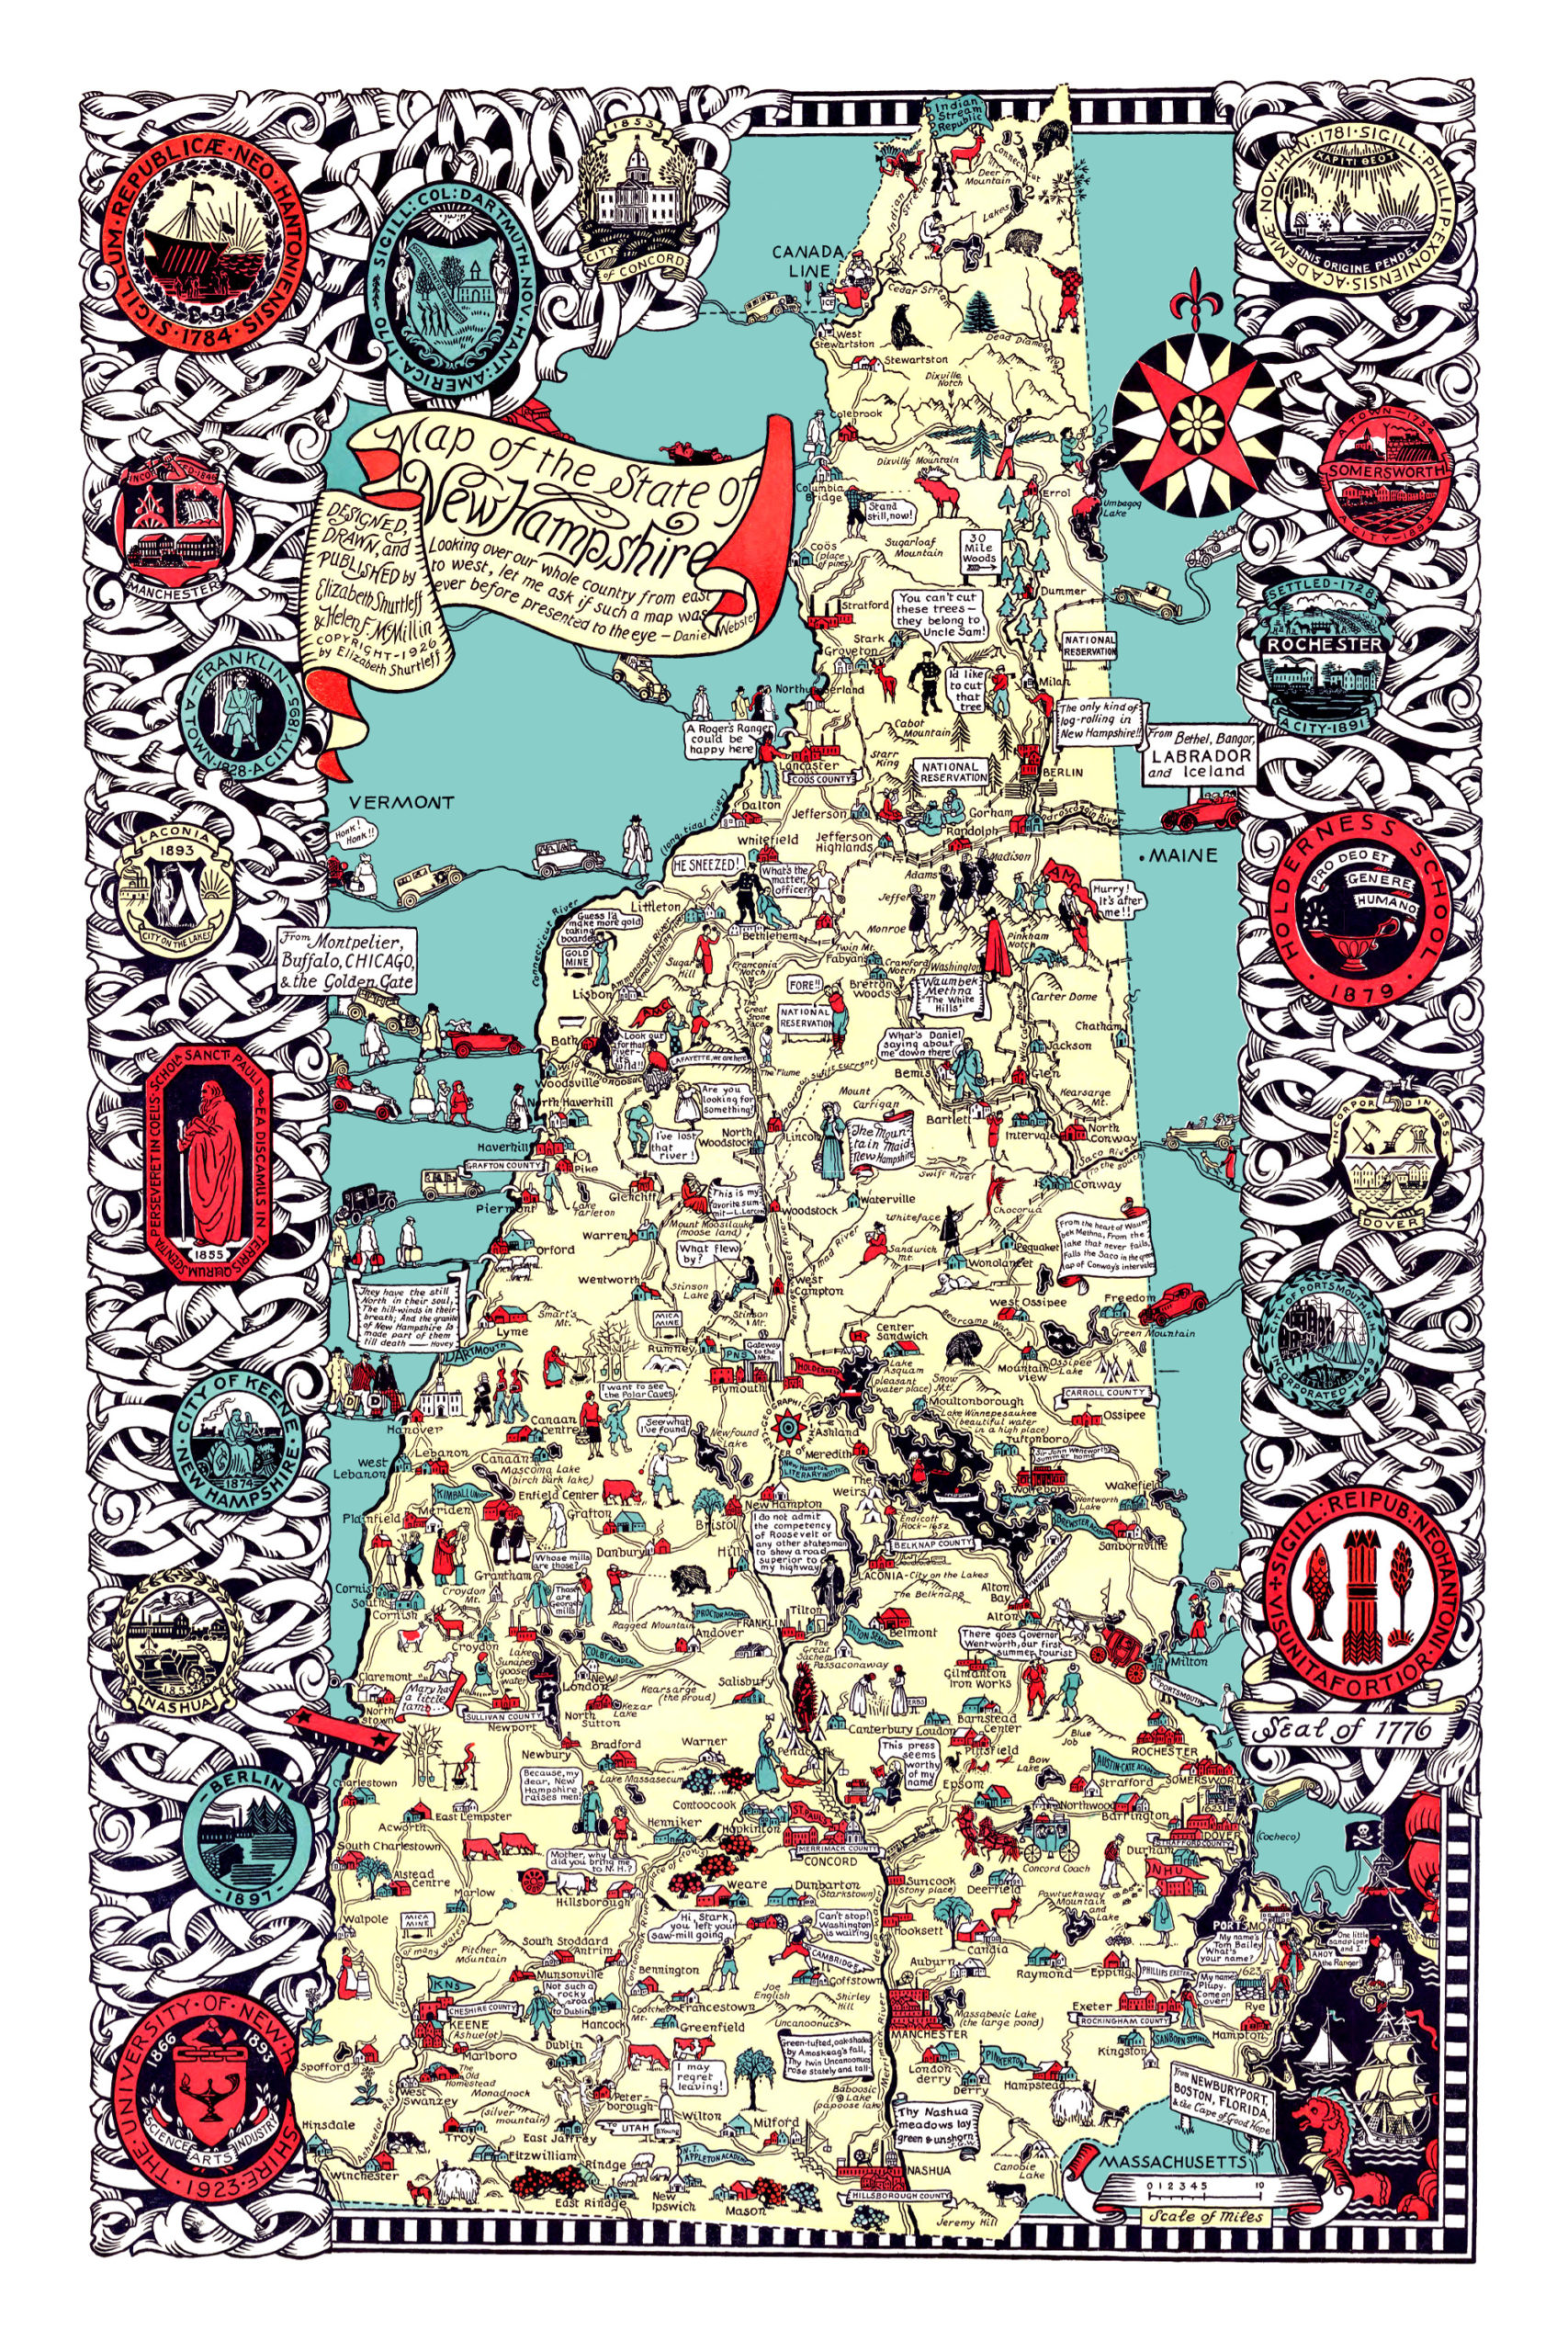 Beautifully detailed map of New Hampshire history from 1926 on